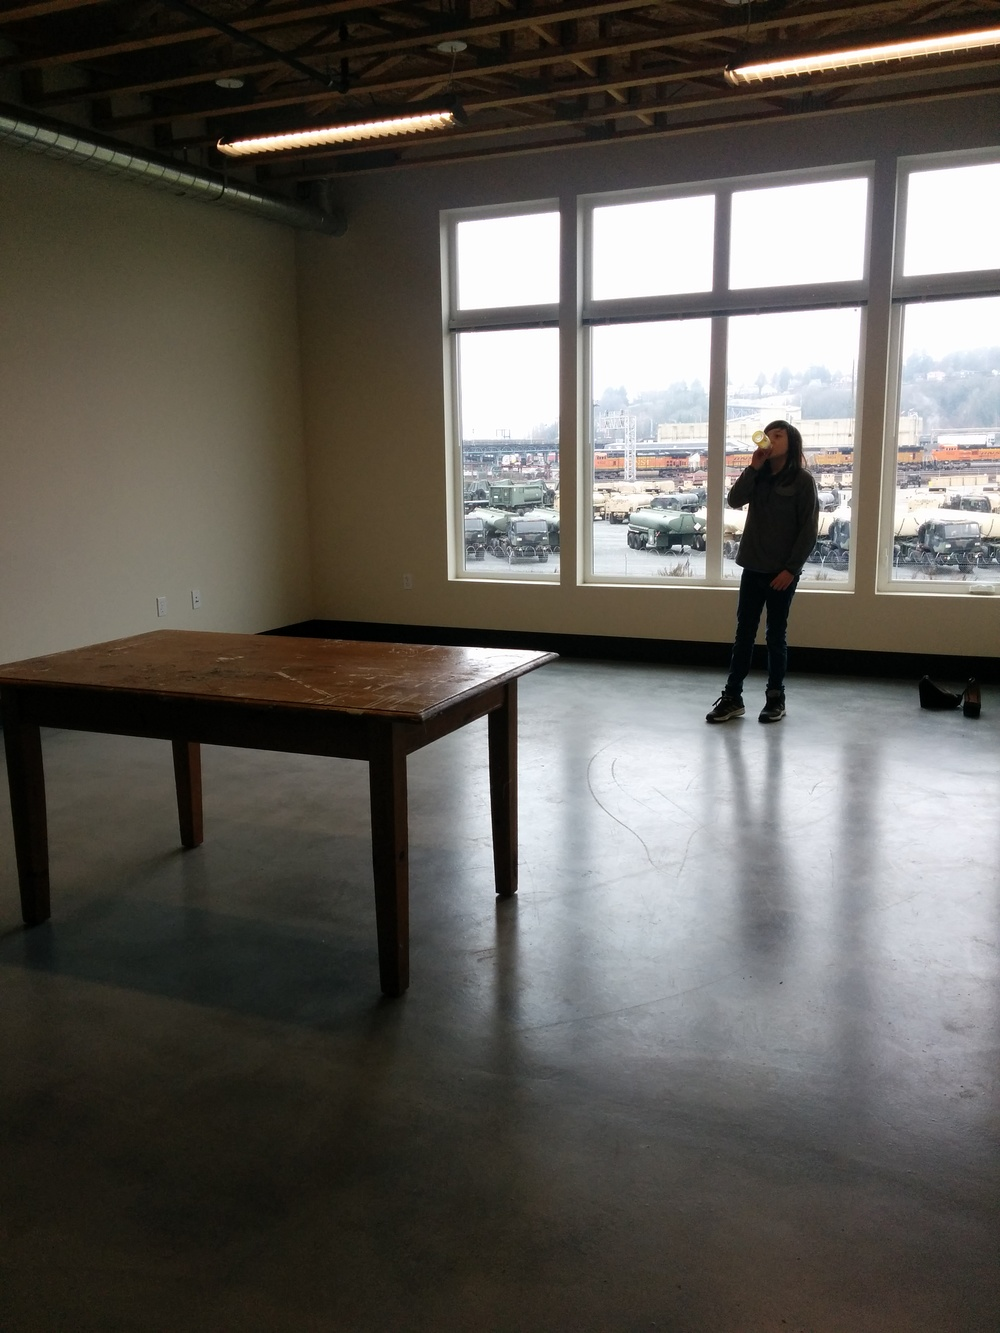 Julie Devine's daughter Eva in front of the big windows looking out across Interbay towards Magnolia.